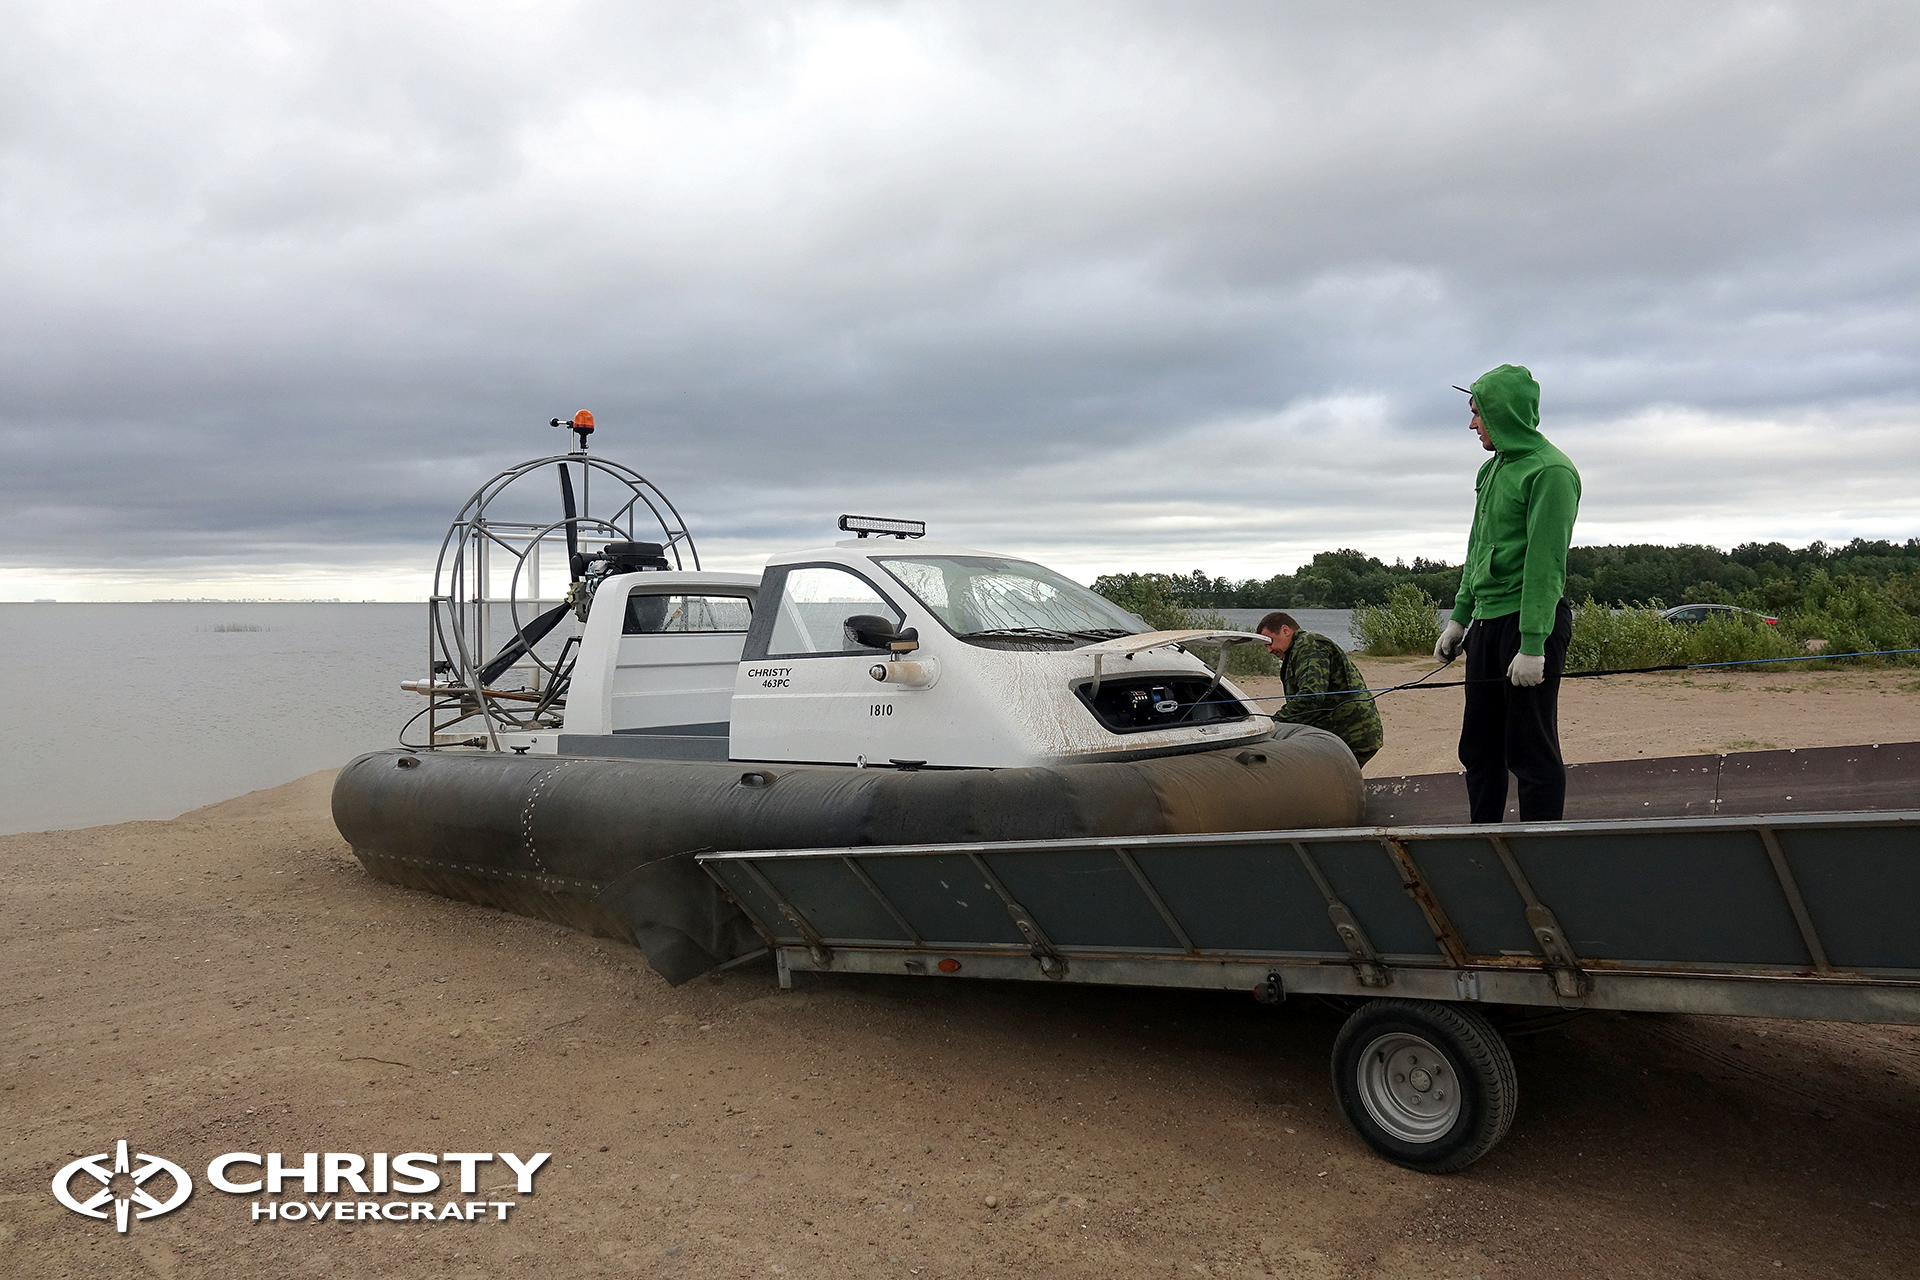 Hovercraft Christy 463 PC in Storm 290618 28.jpg | фото №26